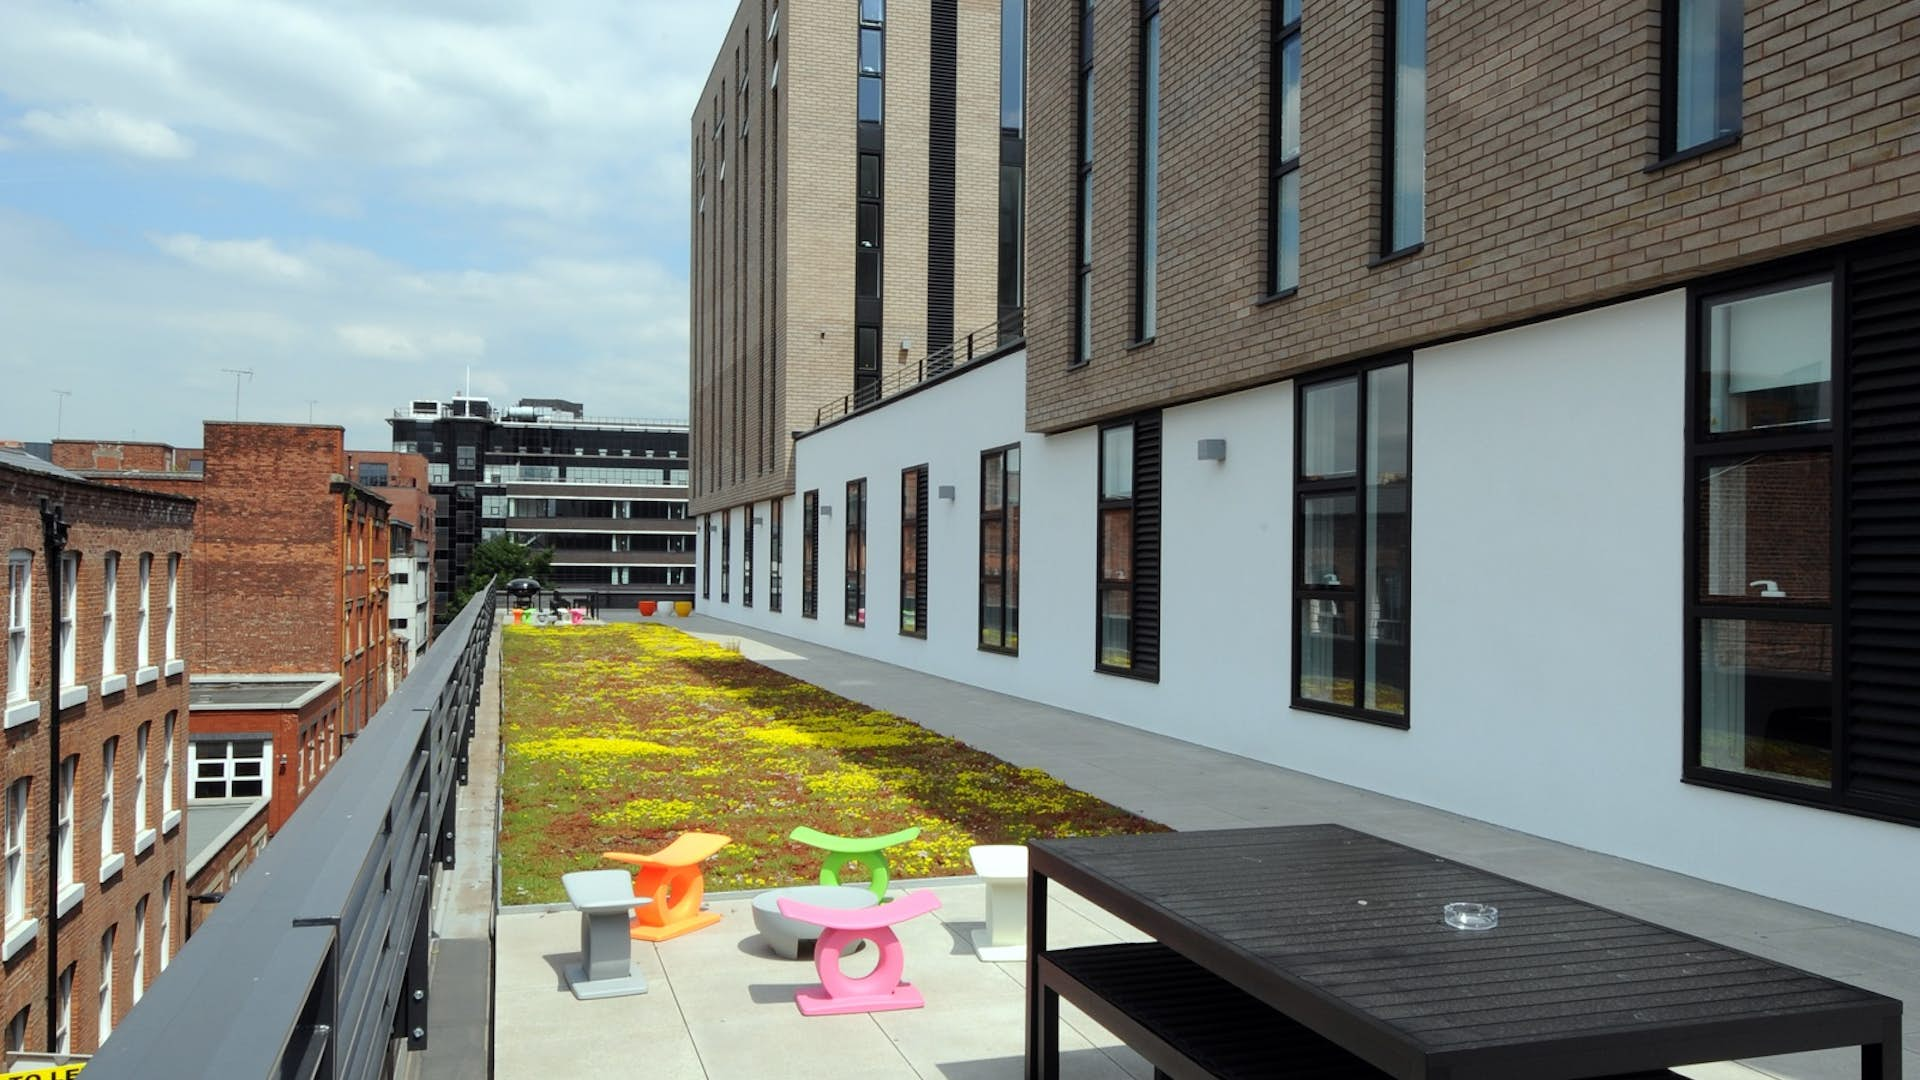 Roof terrace business hire thestudio manchester for Terrace northern quarter